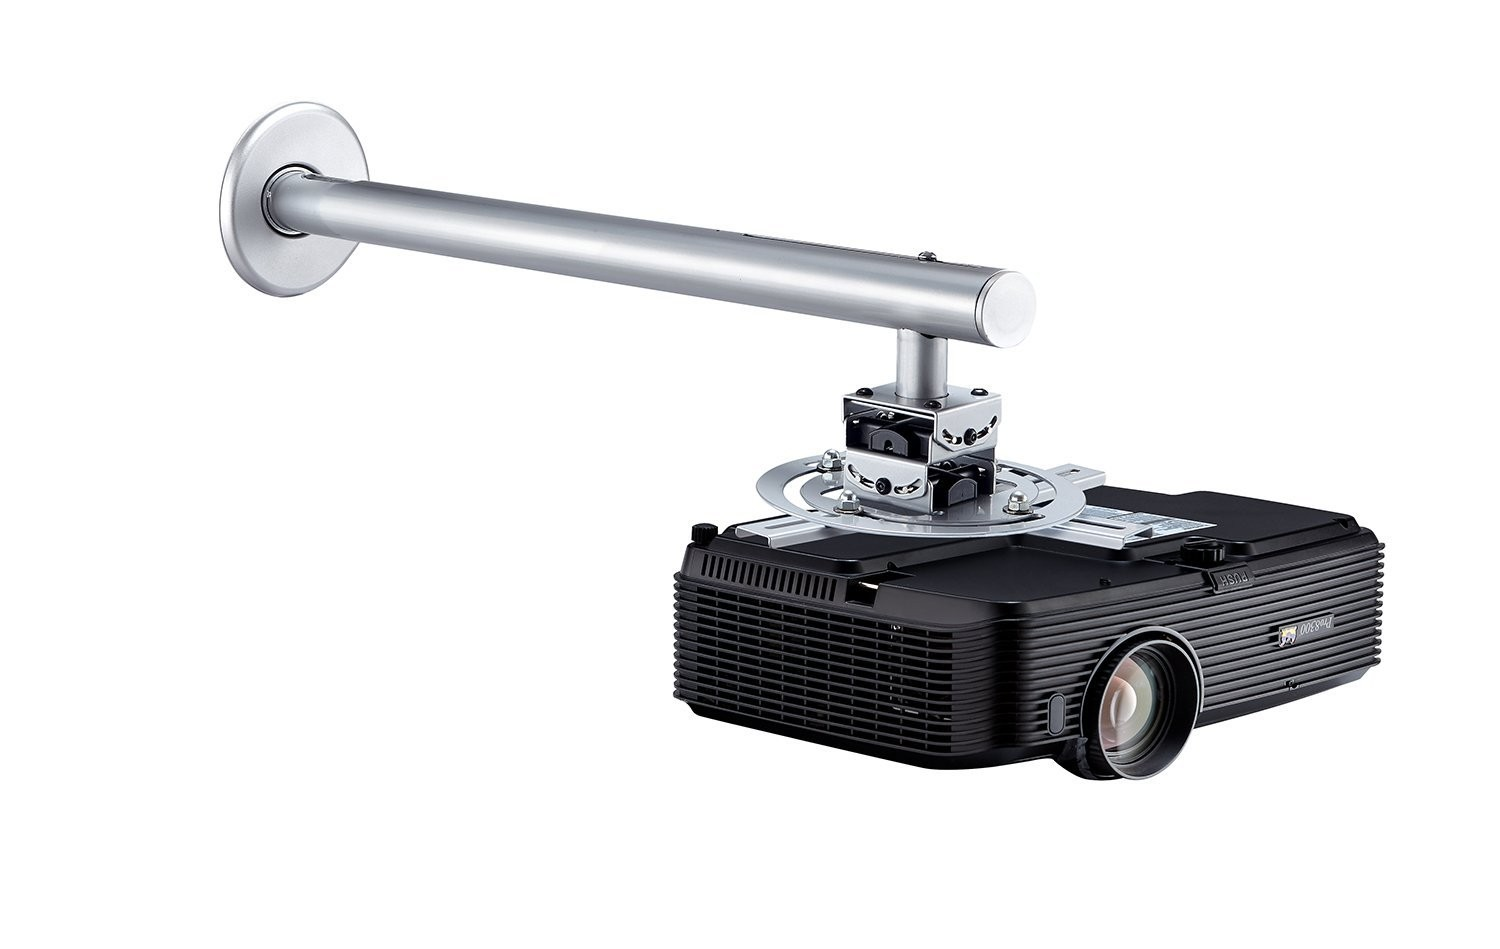 "Projector Universal Wall Mount up to 23"" Extension from Wall, Tilted up and down 12 degree and Precisely  tightly locked"